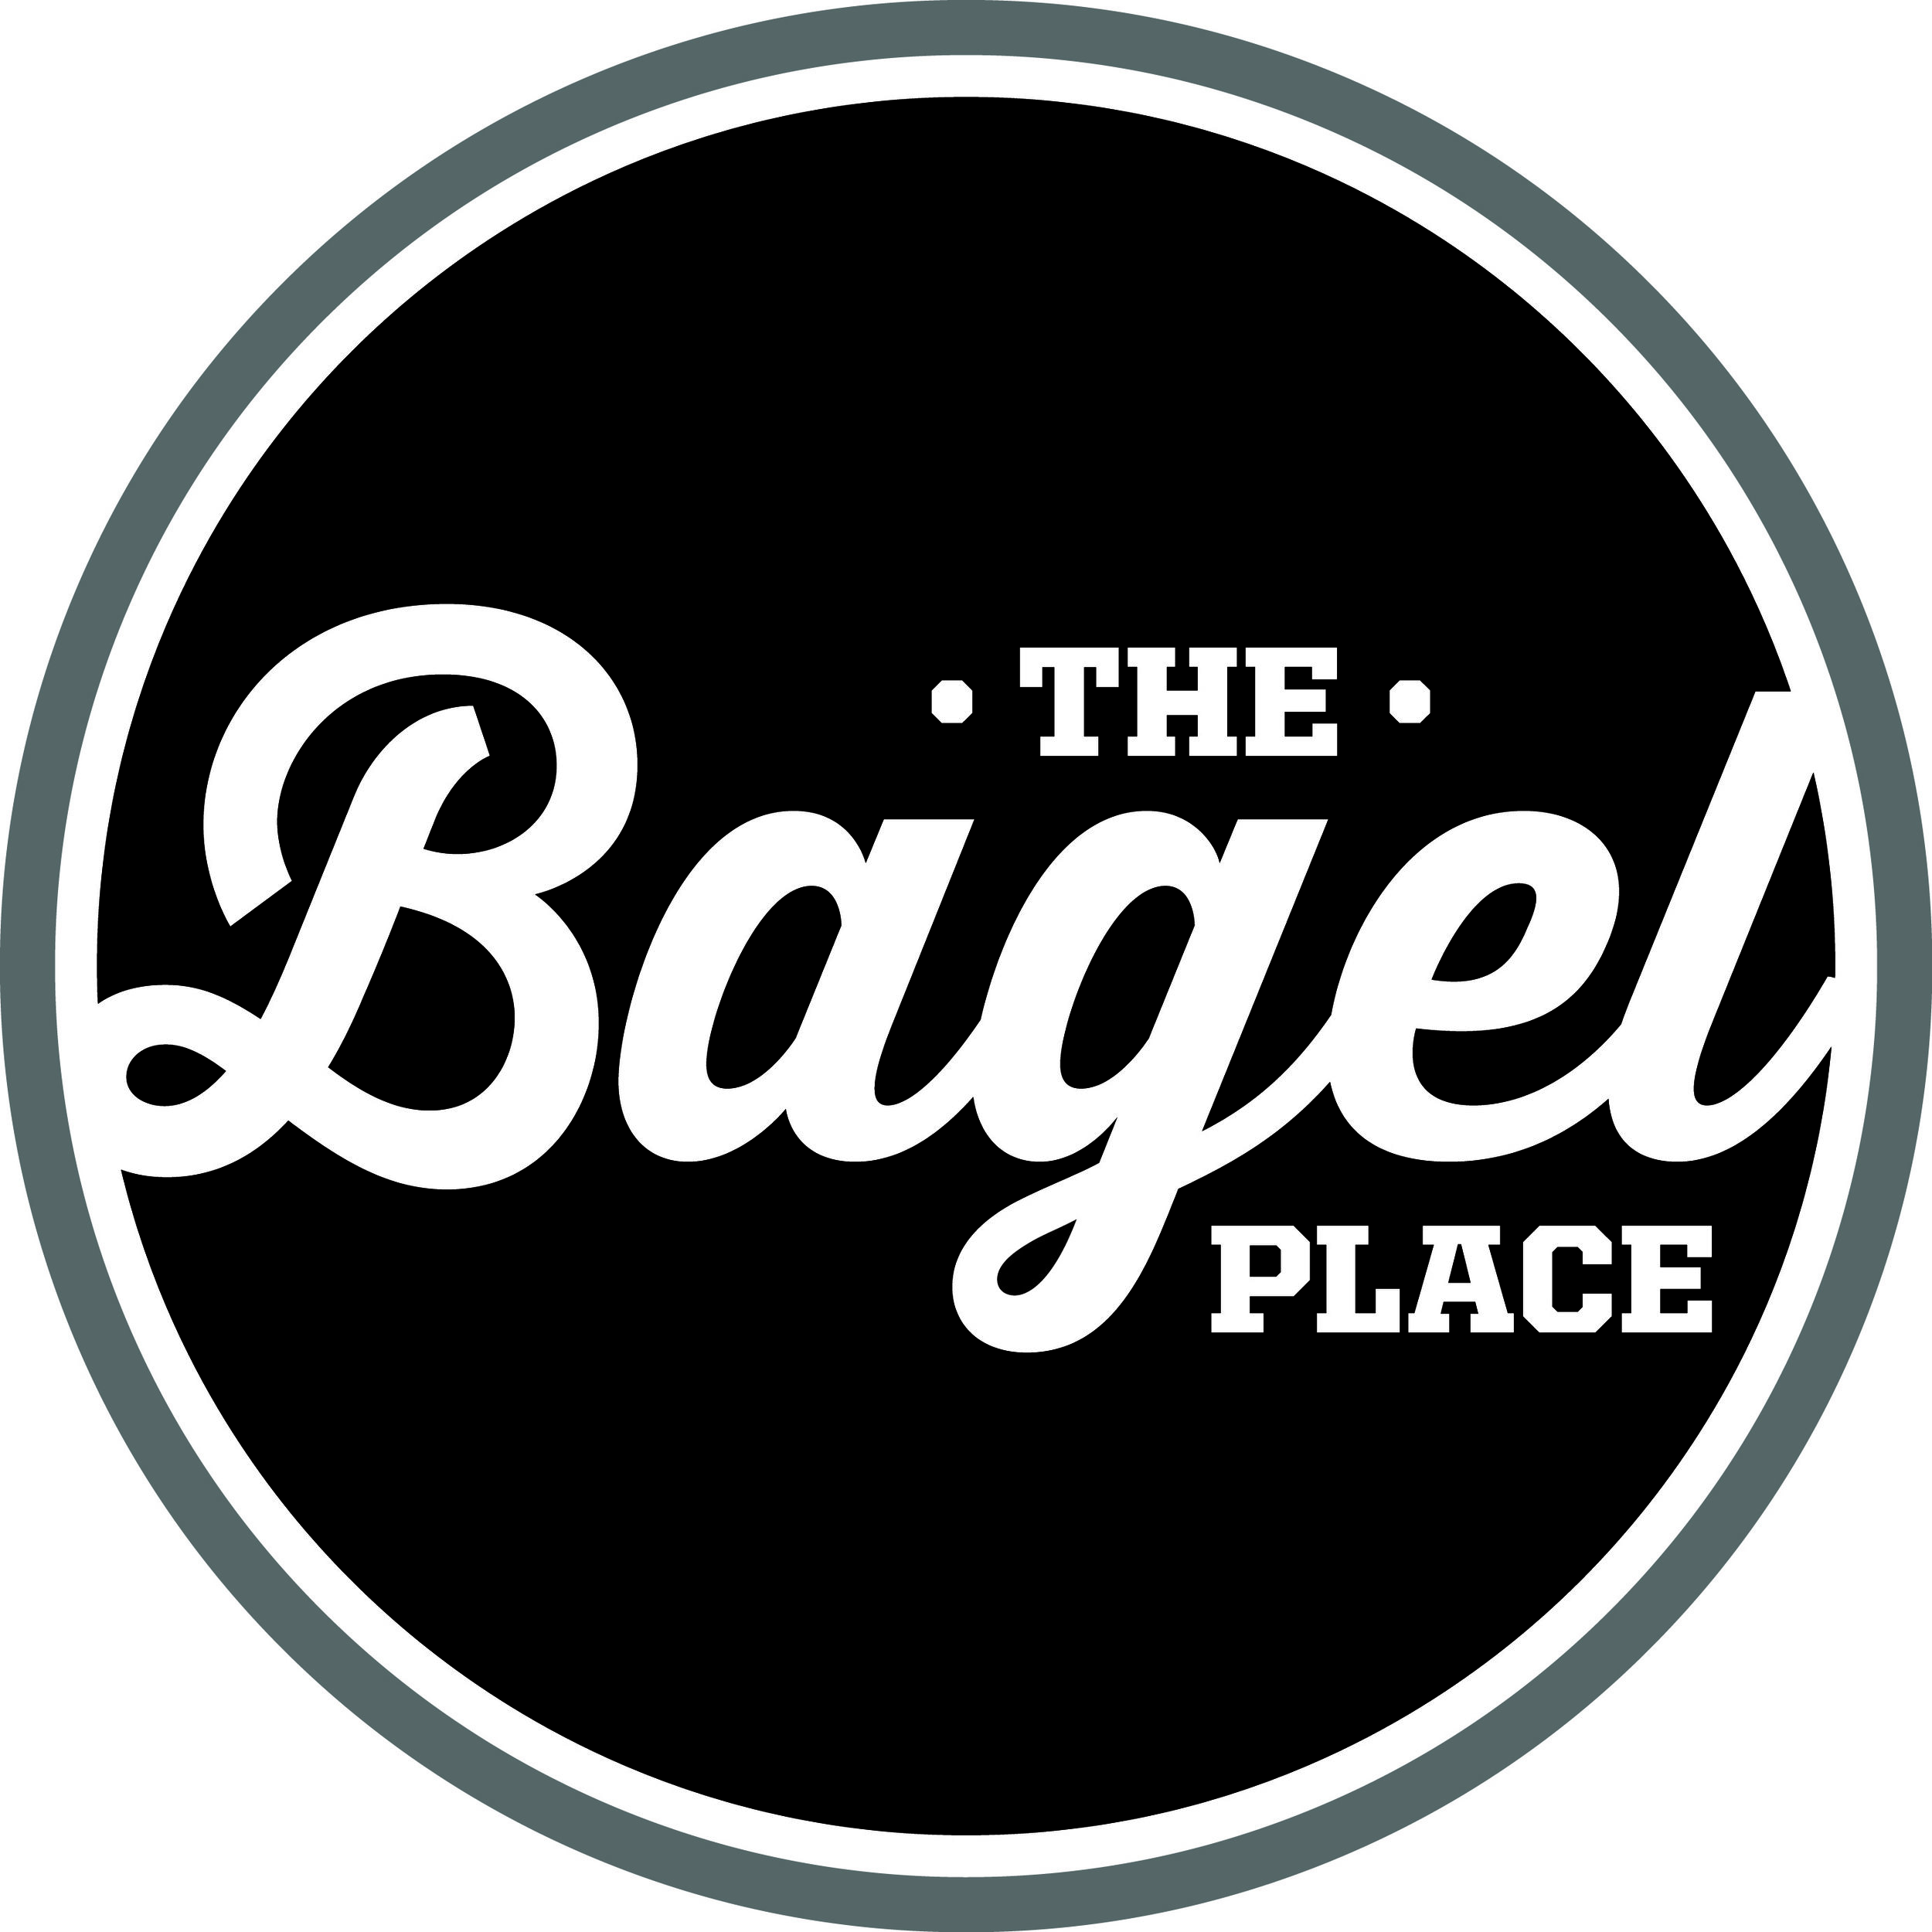 Bagels provided by The Bagel Place! Check them out at  www.TheBagelPlace.com